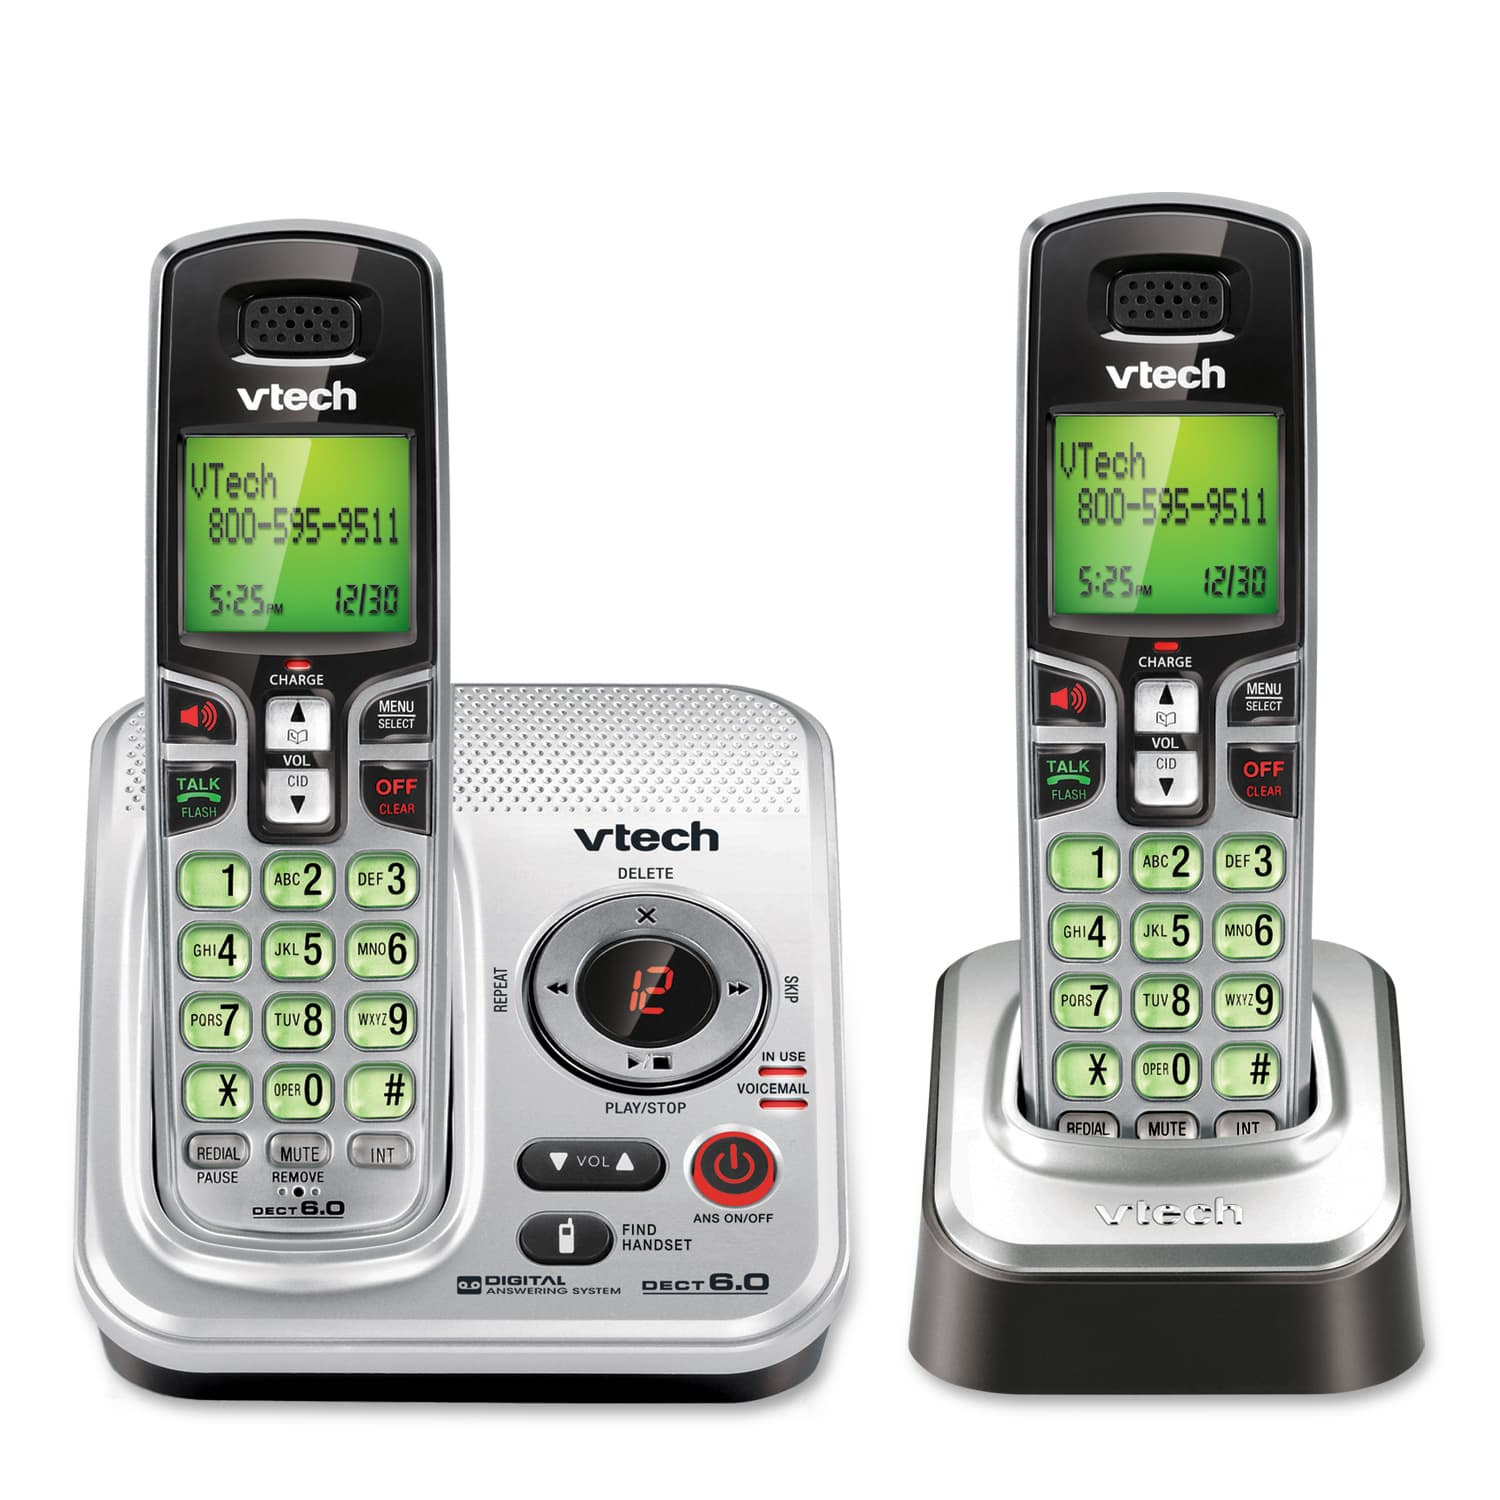 a house phone home phones way to stay connected at home 2 Handset Answering System with Caller ID-Call Waiting